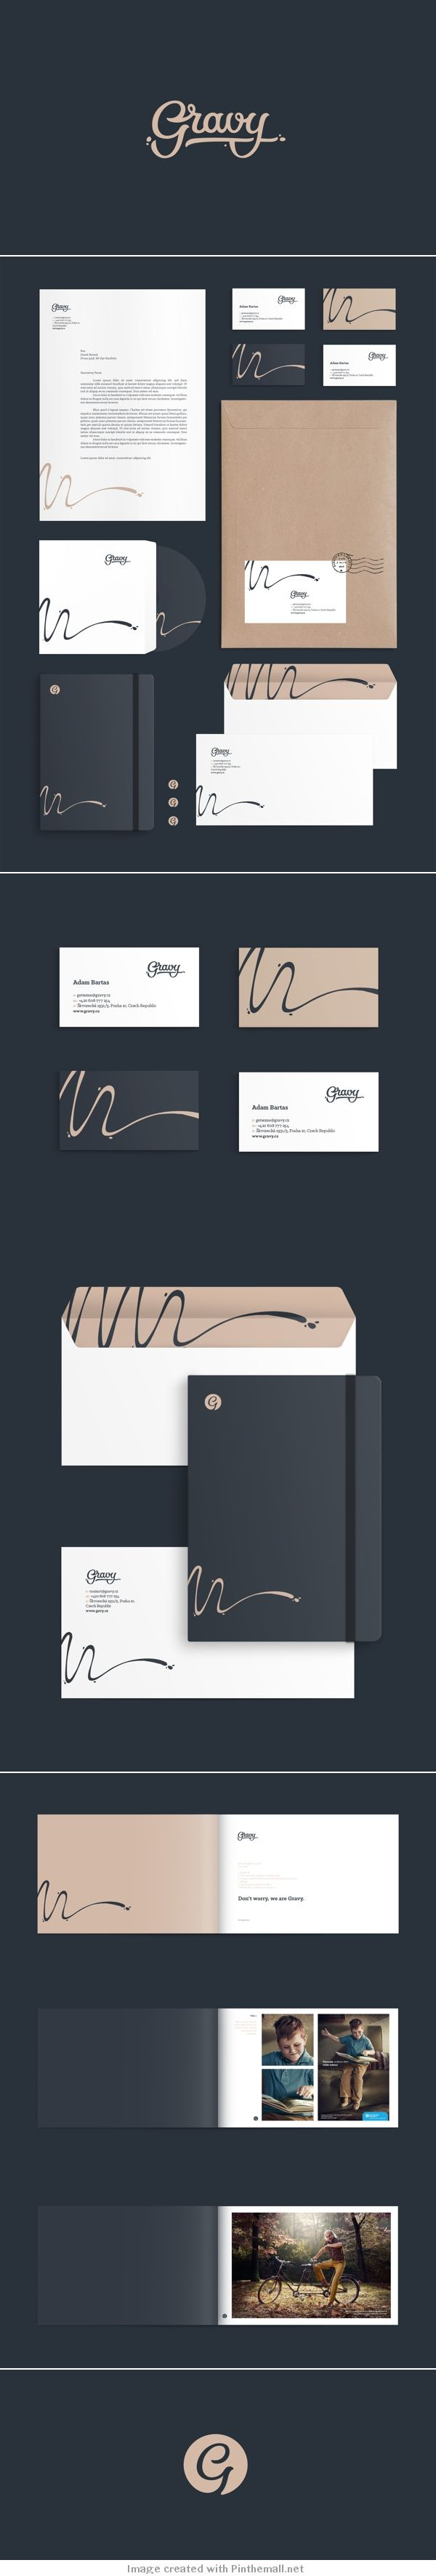 Unique Brand Identity Design on the Internet, Gravy Creative Studio #brandingdesign #brandidentity #identitydesign